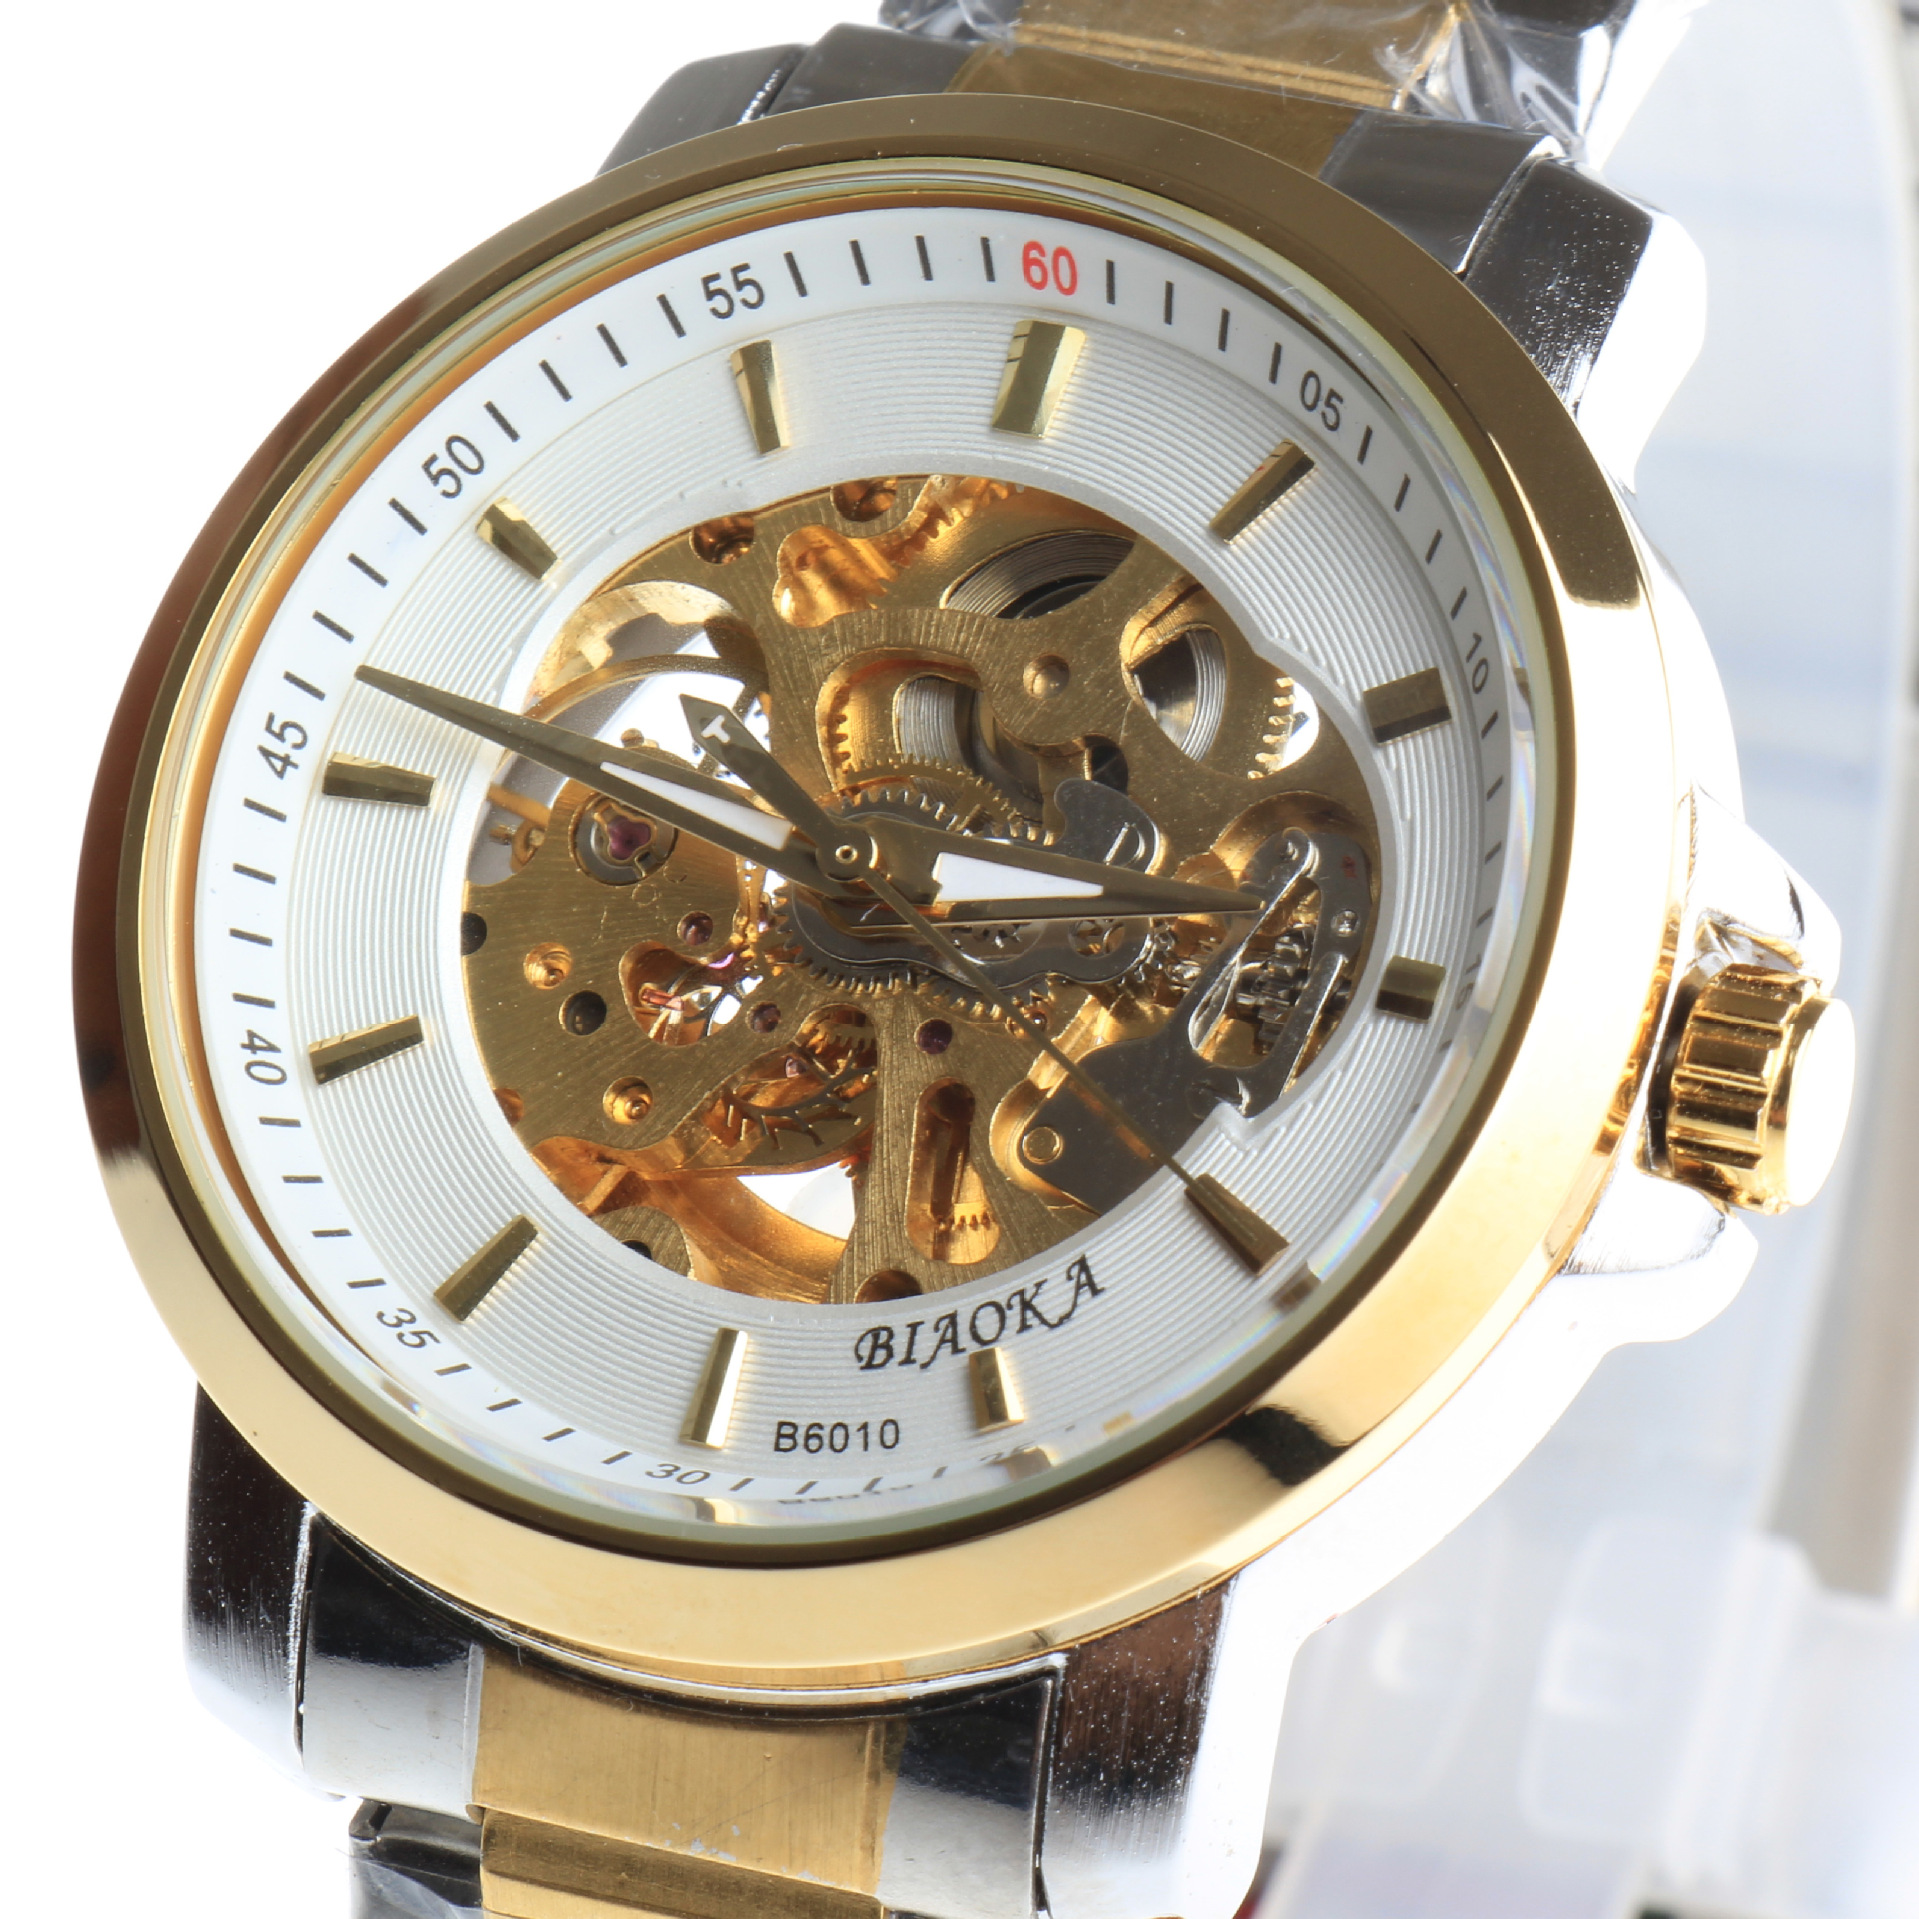 2017 hot Mens Watches Top Luxury Brand Men Automatic Mechanical Watch Men Gold Wrist Watch Relogio Masculino unique smooth case pocket watch mechanical automatic watches with pendant chain necklace men women gift relogio de bolso